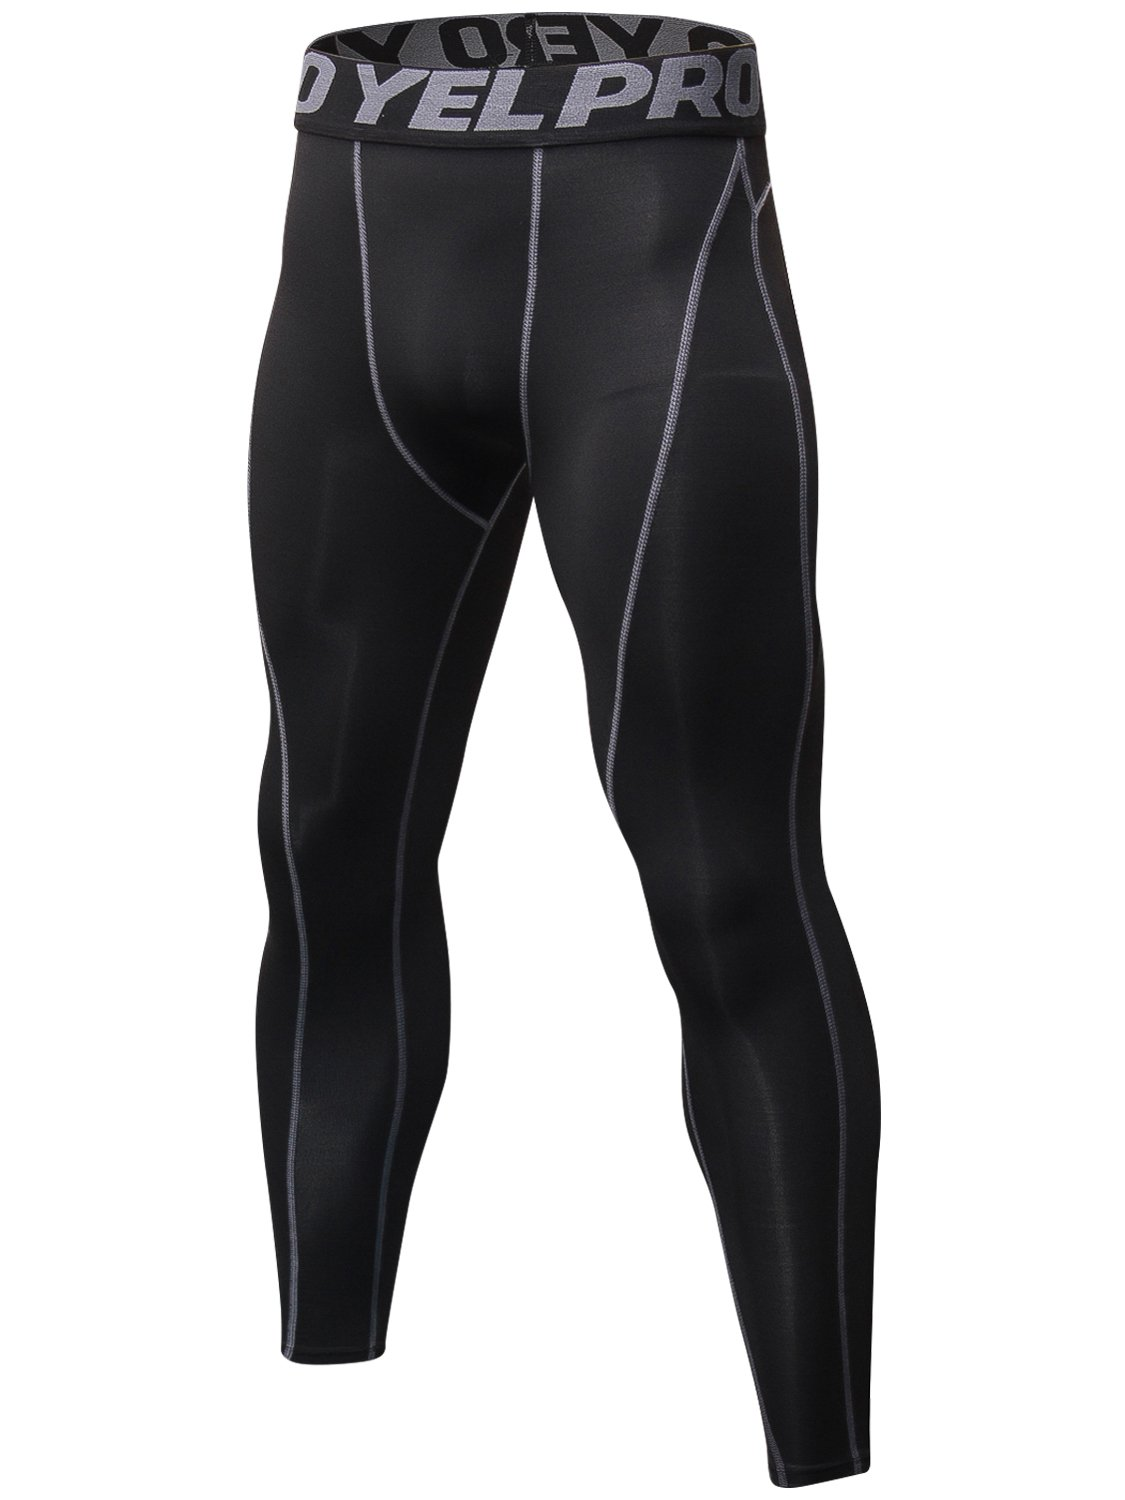 Lavento Men's Compression Pants Baselayer Cool Dry Running Ankle Leggings Active Tights (1 Pack-1060 Black/Gray,2X-Large)